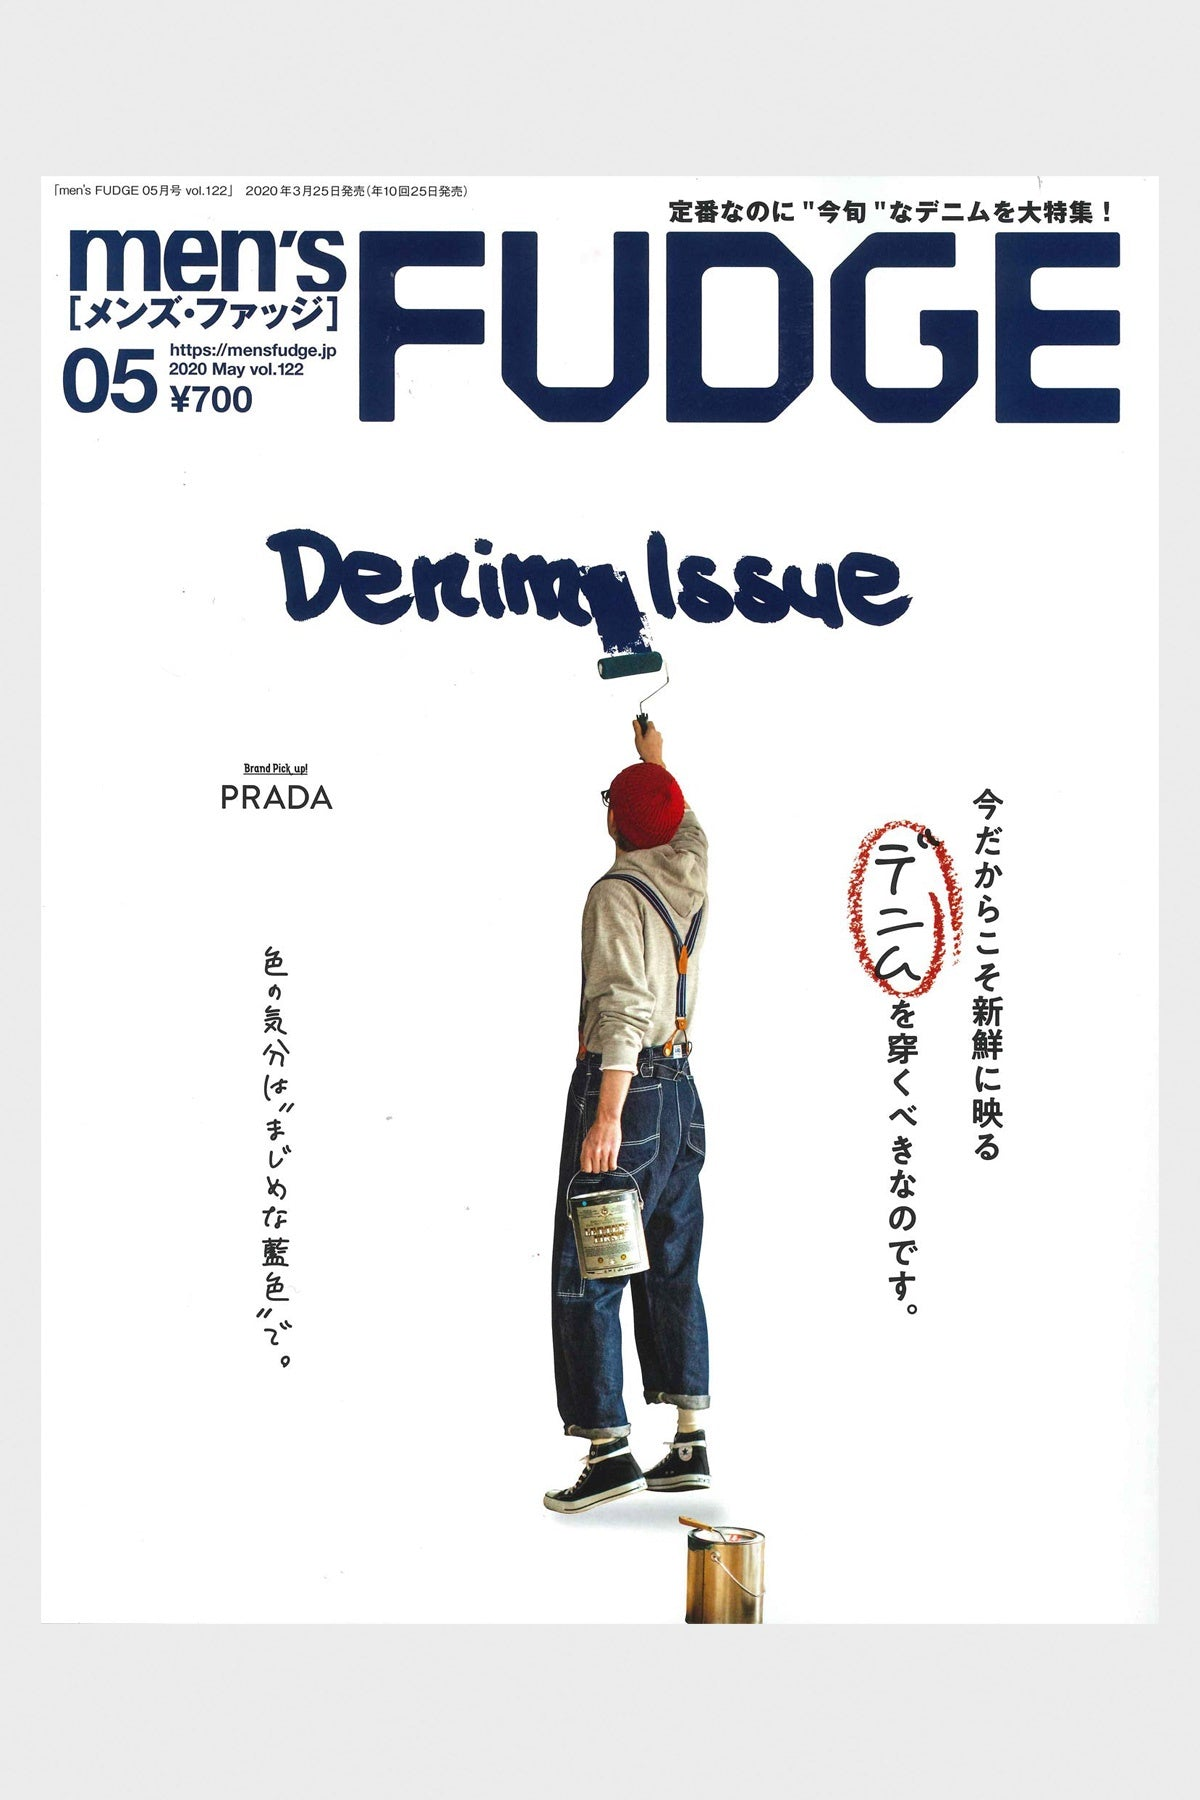 FUDGE MAGAZINE - Men's FUDGE - Vol. 122 - Canoe Club